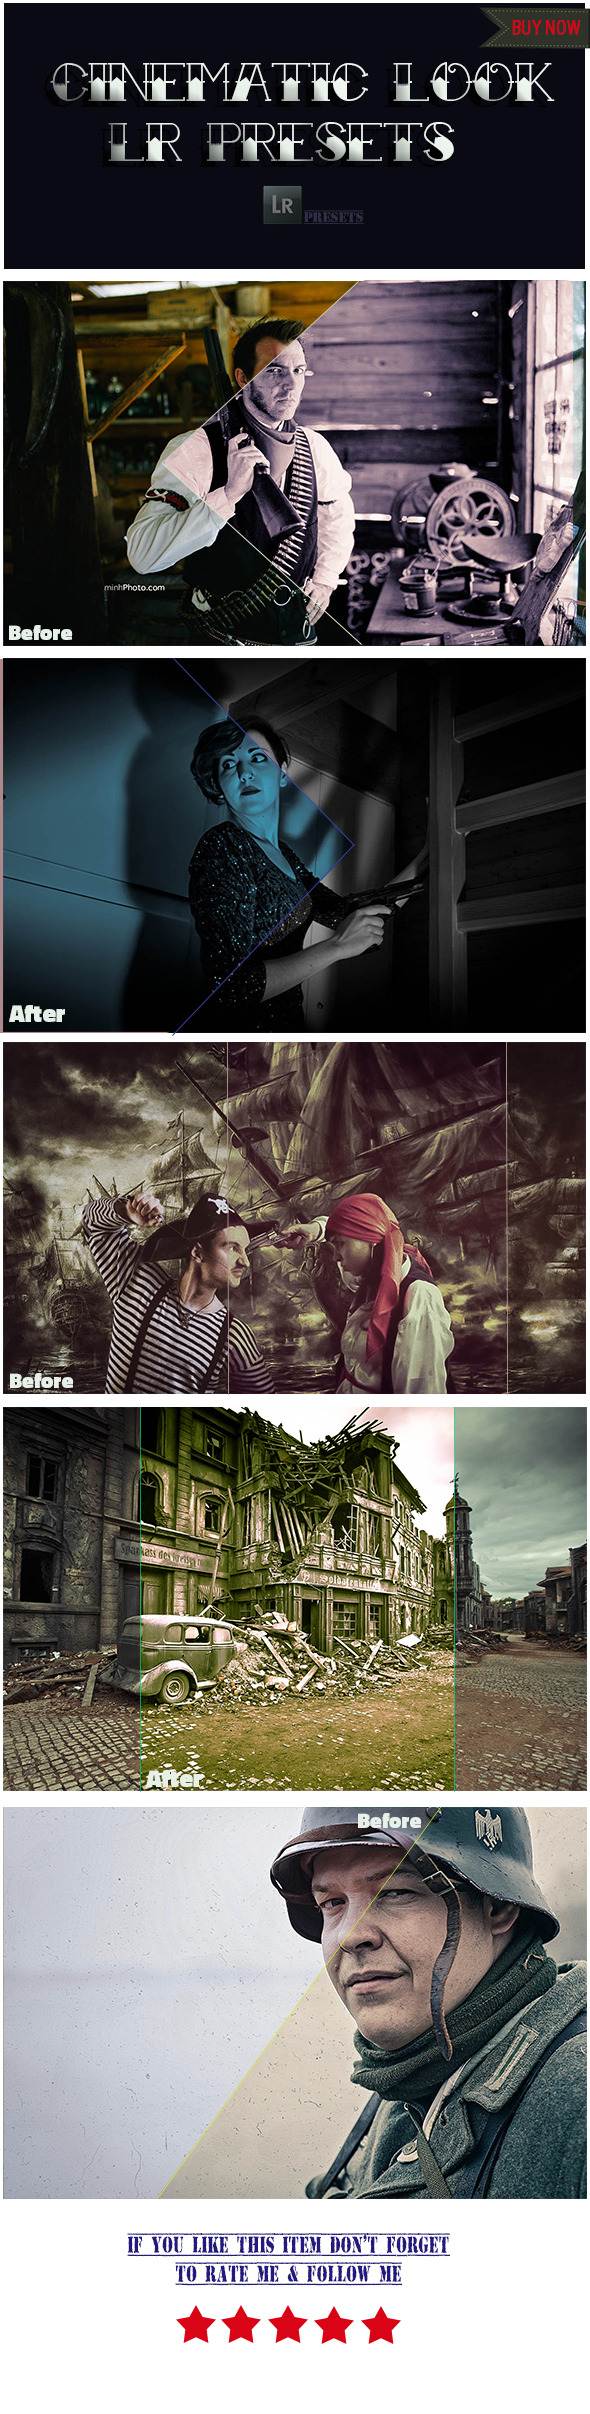 GraphicRiver 5 Cinematic Look Presets 10106456